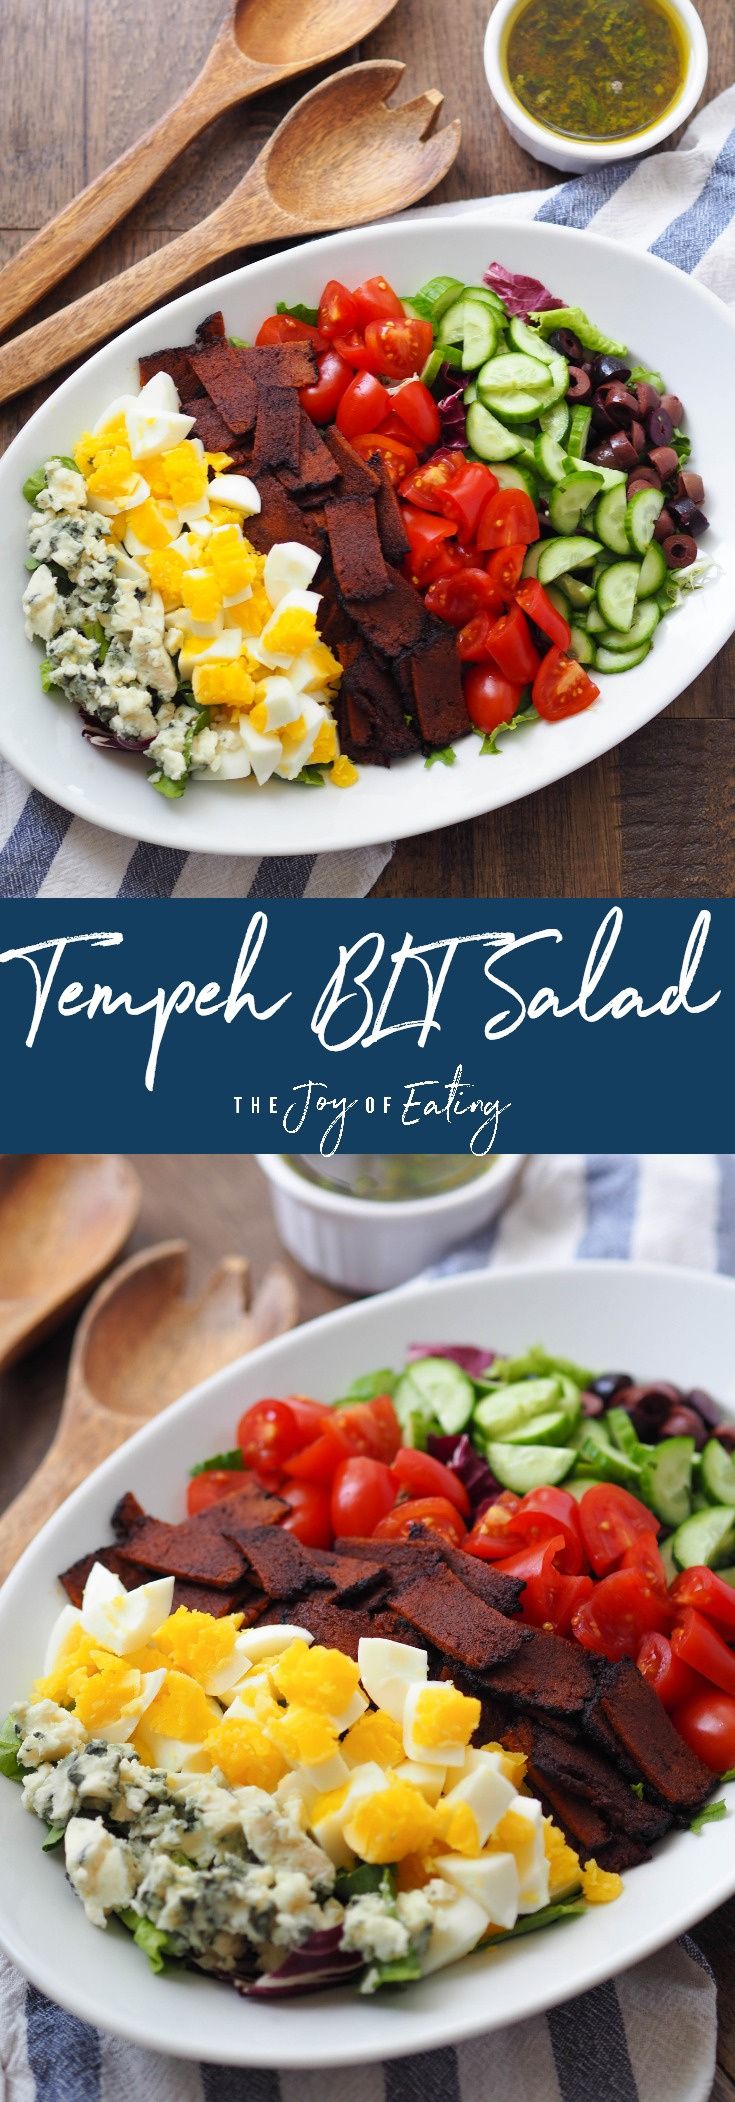 Make this vegetarian tempeh BLT salad! Super easy and packed with flavor and protein! #tempeh #blt #salad #healthyrecipe #meatless #recipe